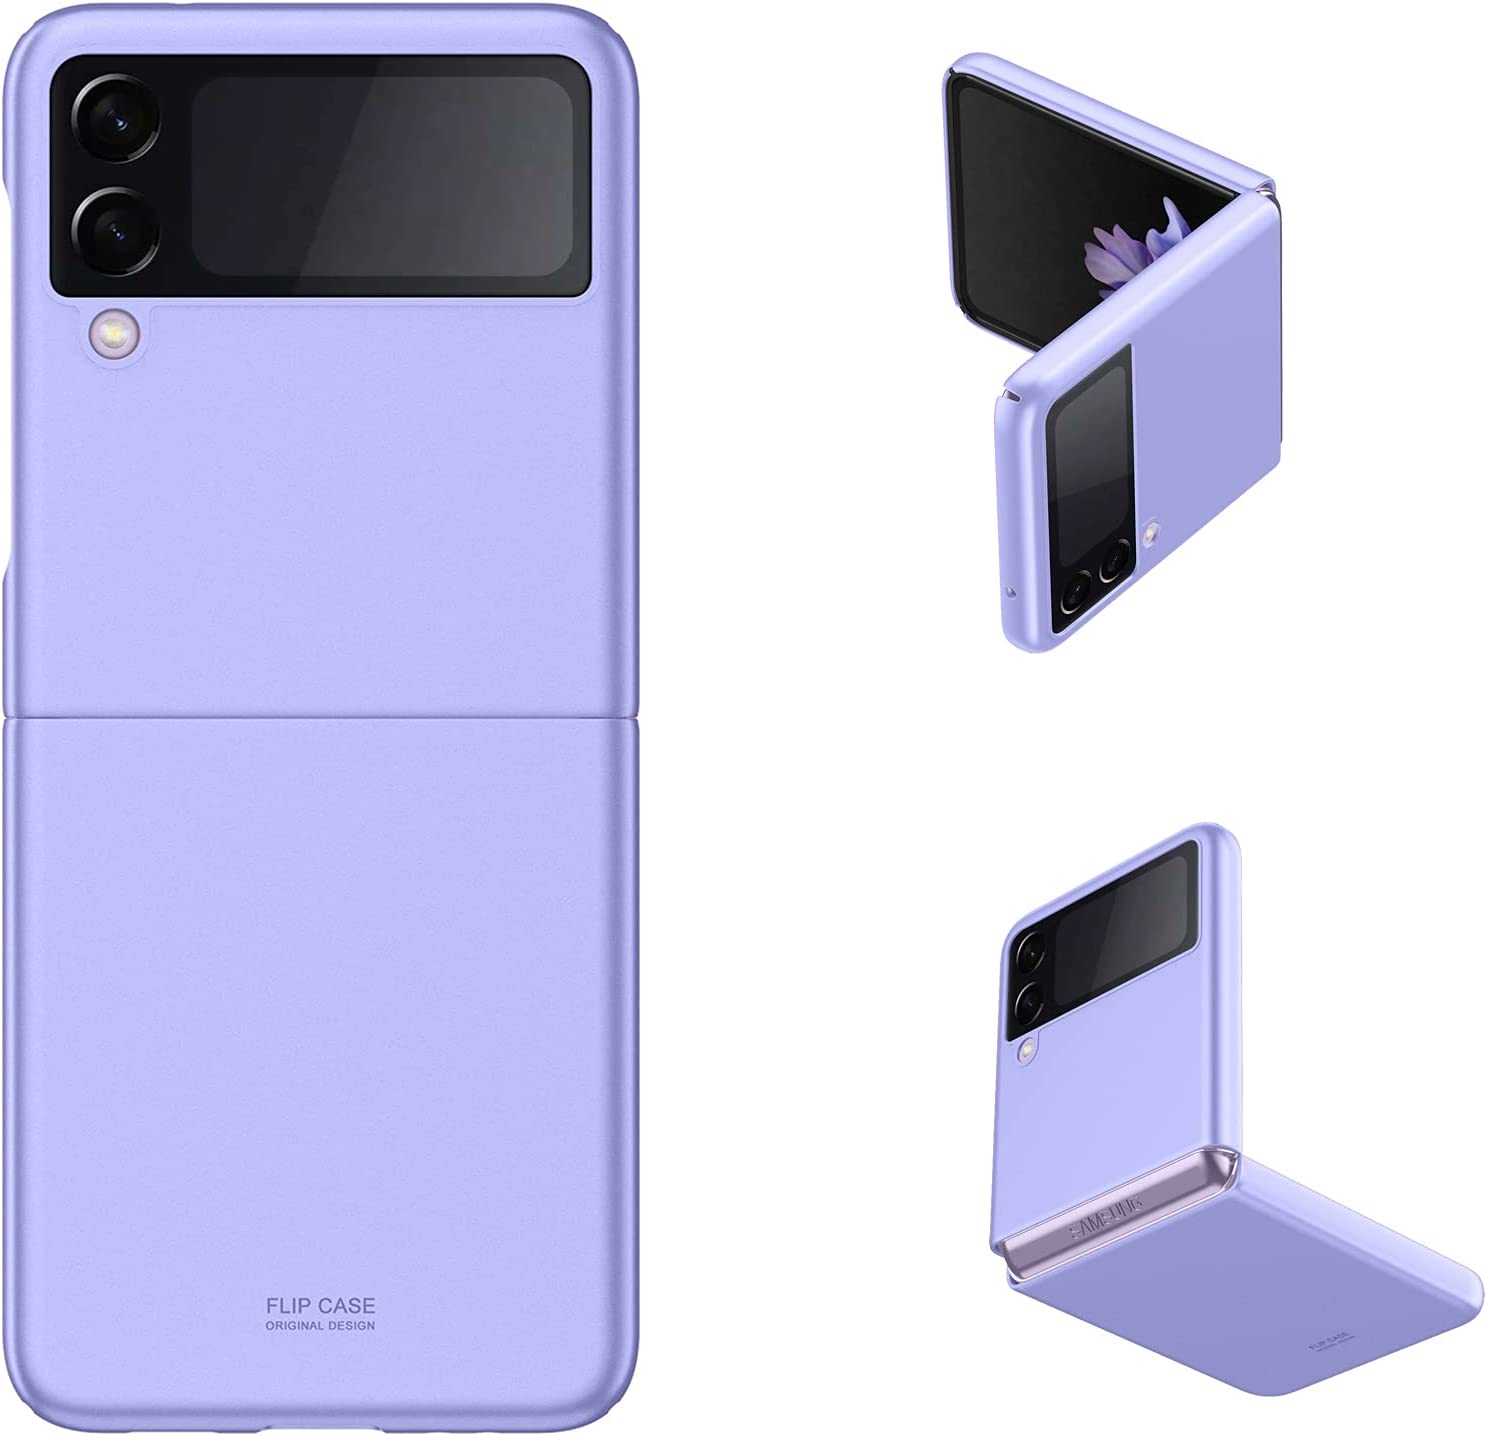 Galaxy Z Flip 3 Case, Back Cover Protector Case Skin Feel Matte PC Cover Compatible with Samsung Galaxy Z Flip 3 5G (Purple)